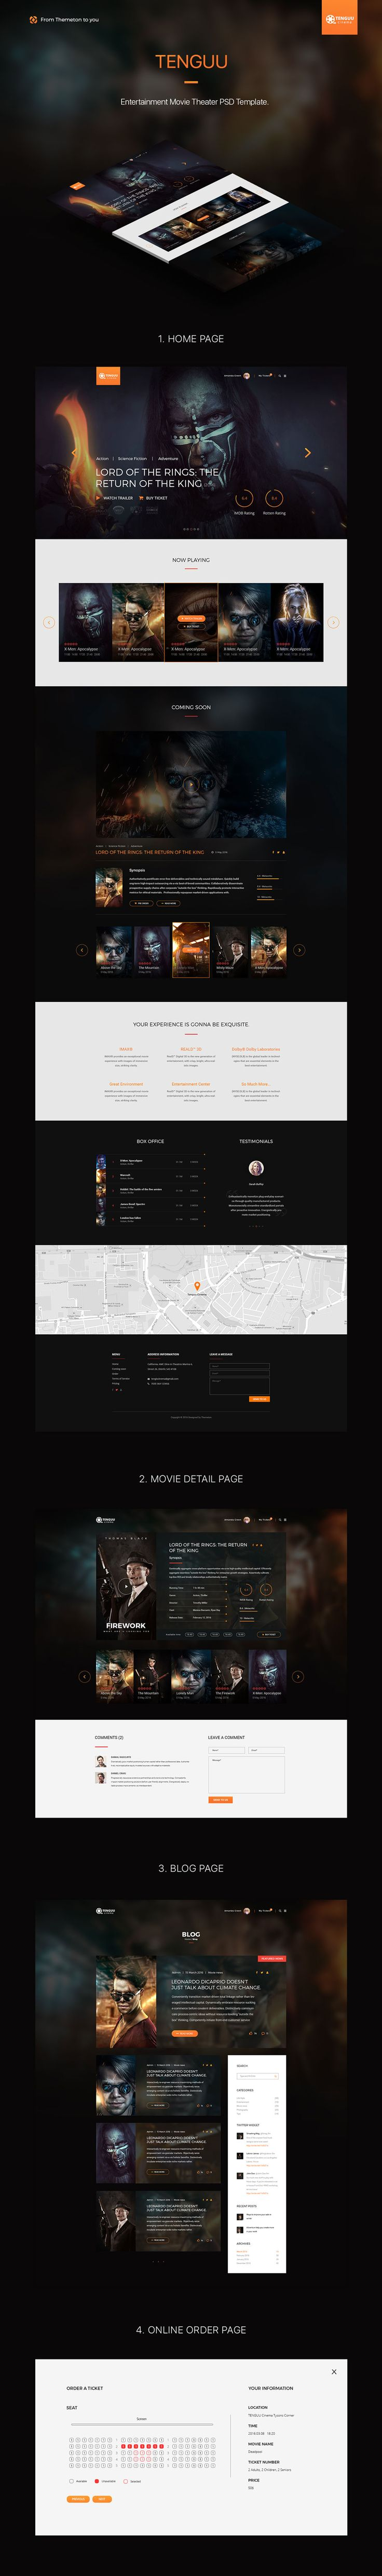 Tenguu Cinema - Movie Theater PSD Website Template • Download ↓ https://themeforest.net/item/tenguu-cinema-movie-theater-template/15249765?ref=pxcr